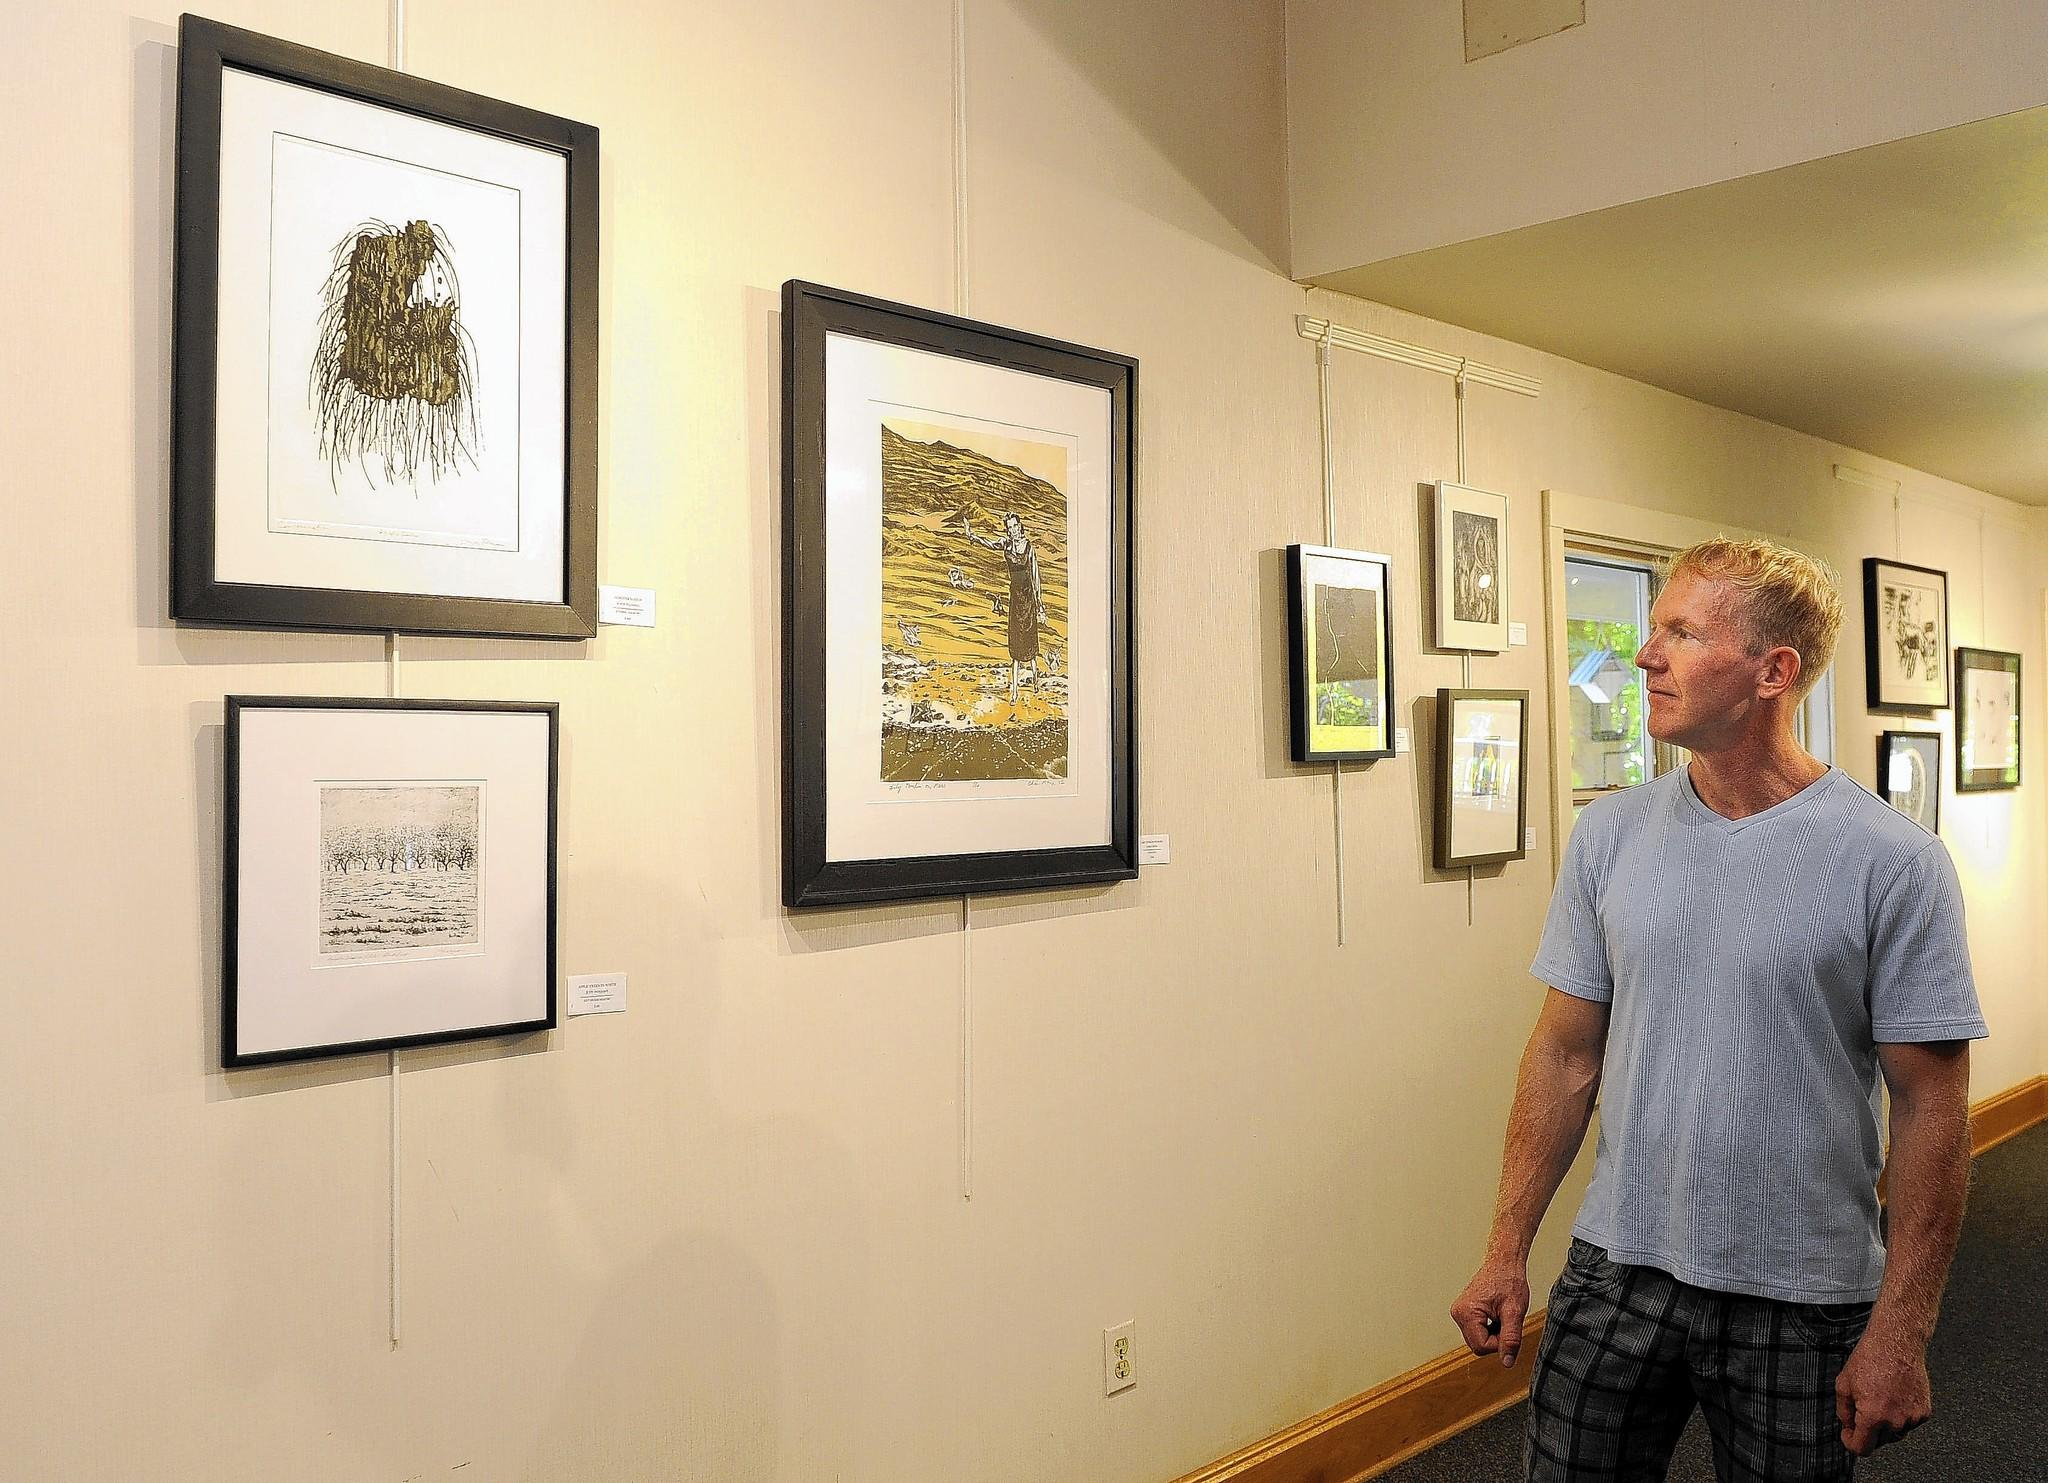 Chris Mona, a professor of art at Anne Arundel community college, looks at works in an exhibit from the printmaking club of the college, which are on display at the gallery at Quiet Waters Park. He is an artist who has work in the show and is also the club's leader.